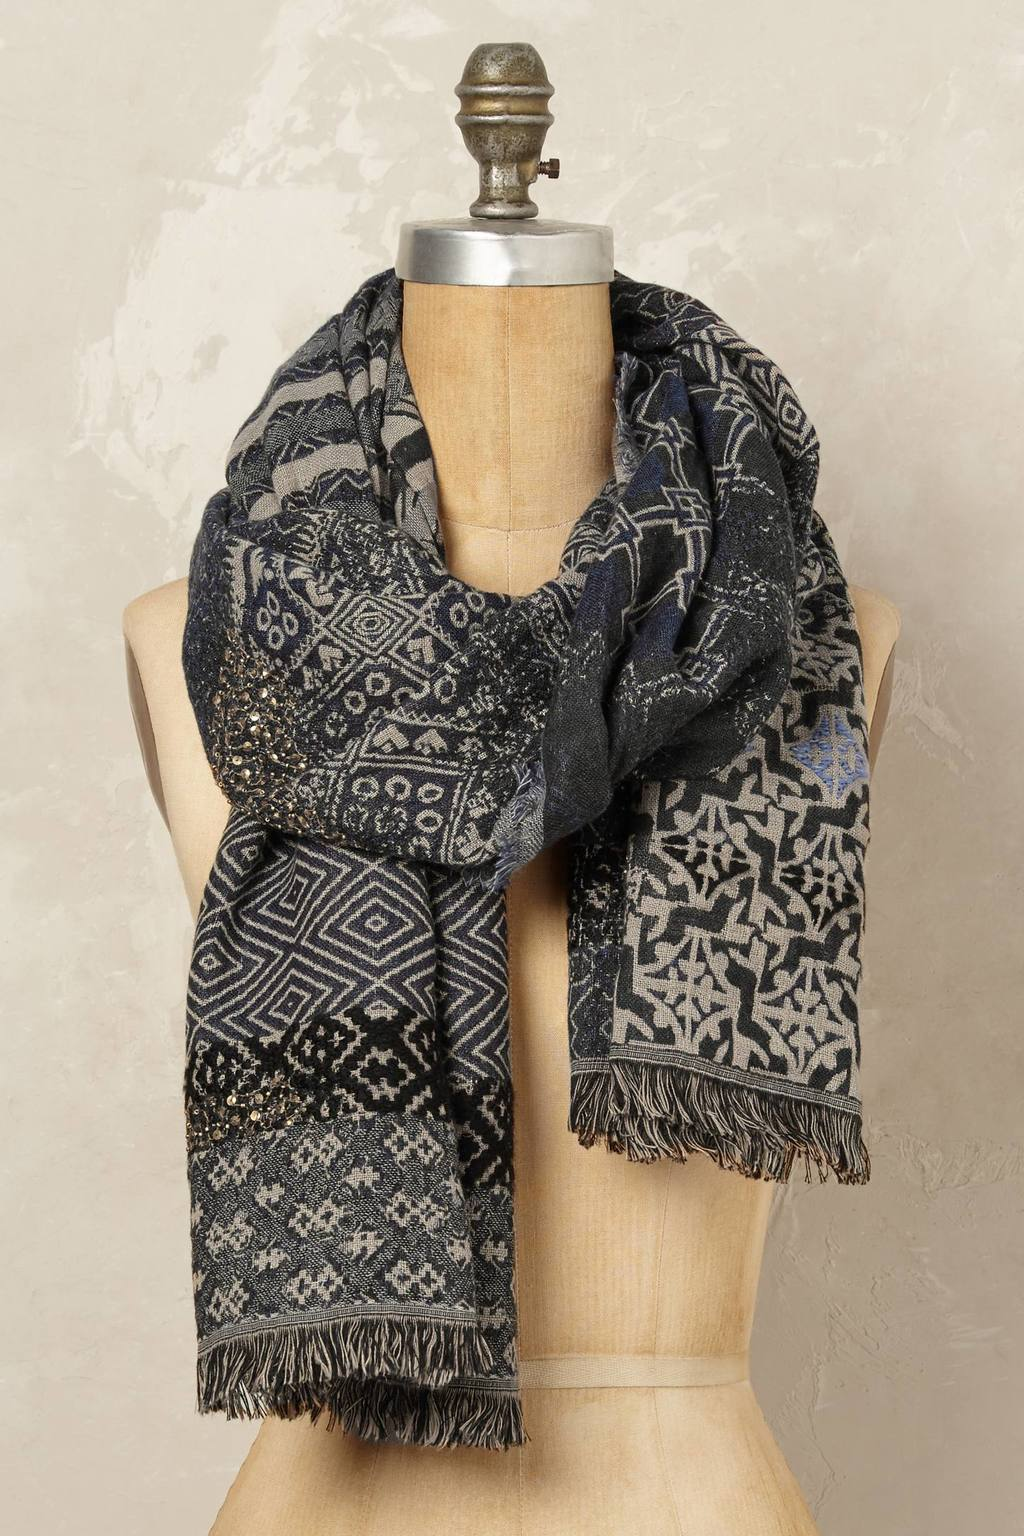 Agra Scarf - predominant colour: charcoal; secondary colour: light grey; occasions: casual; type of pattern: heavy; style: regular; size: standard; material: fabric; pattern: patterned/print; multicoloured: multicoloured; season: a/w 2016